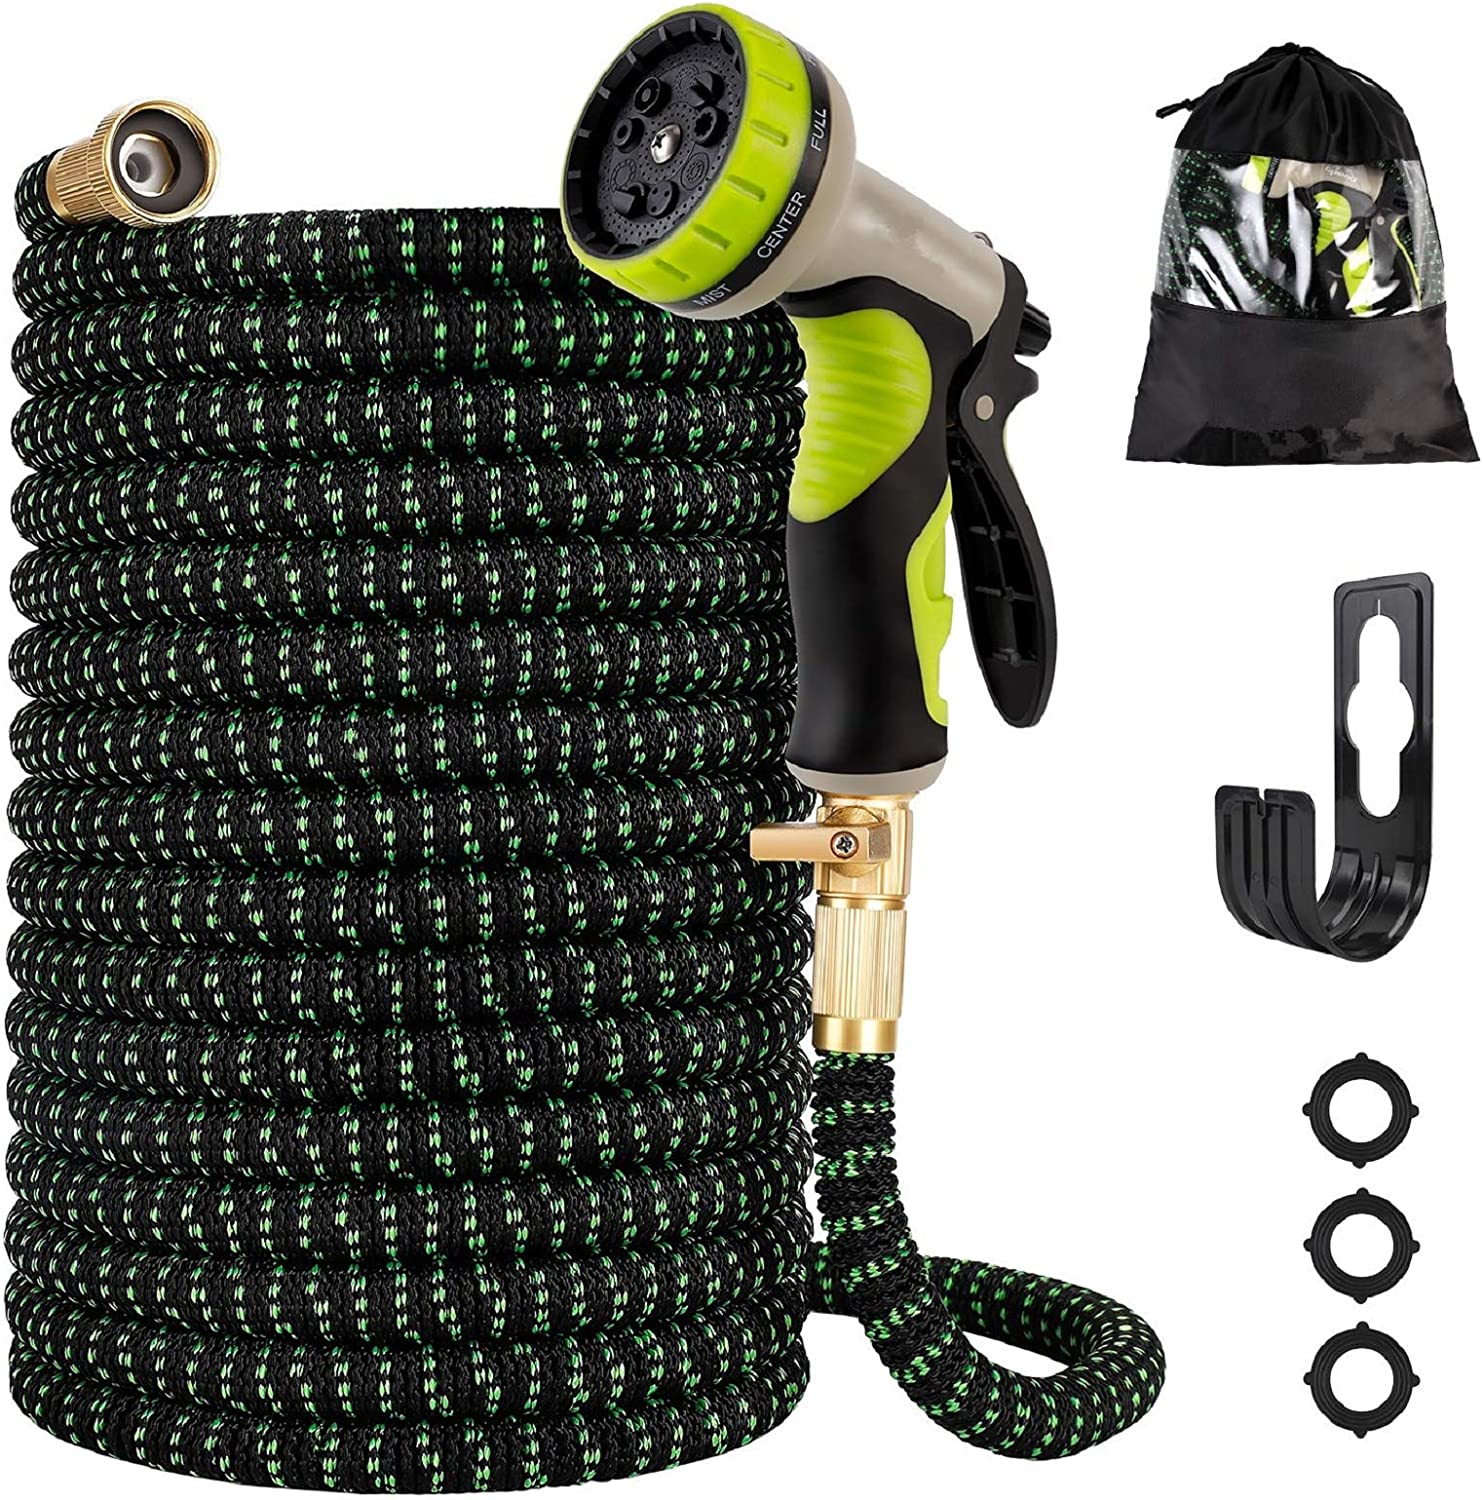 Gpeng Expandable Garden Hose, Water Collapsible Hose with 9 Function Spray Nozzle, Durable 3-Layers Latex Core with 3/4